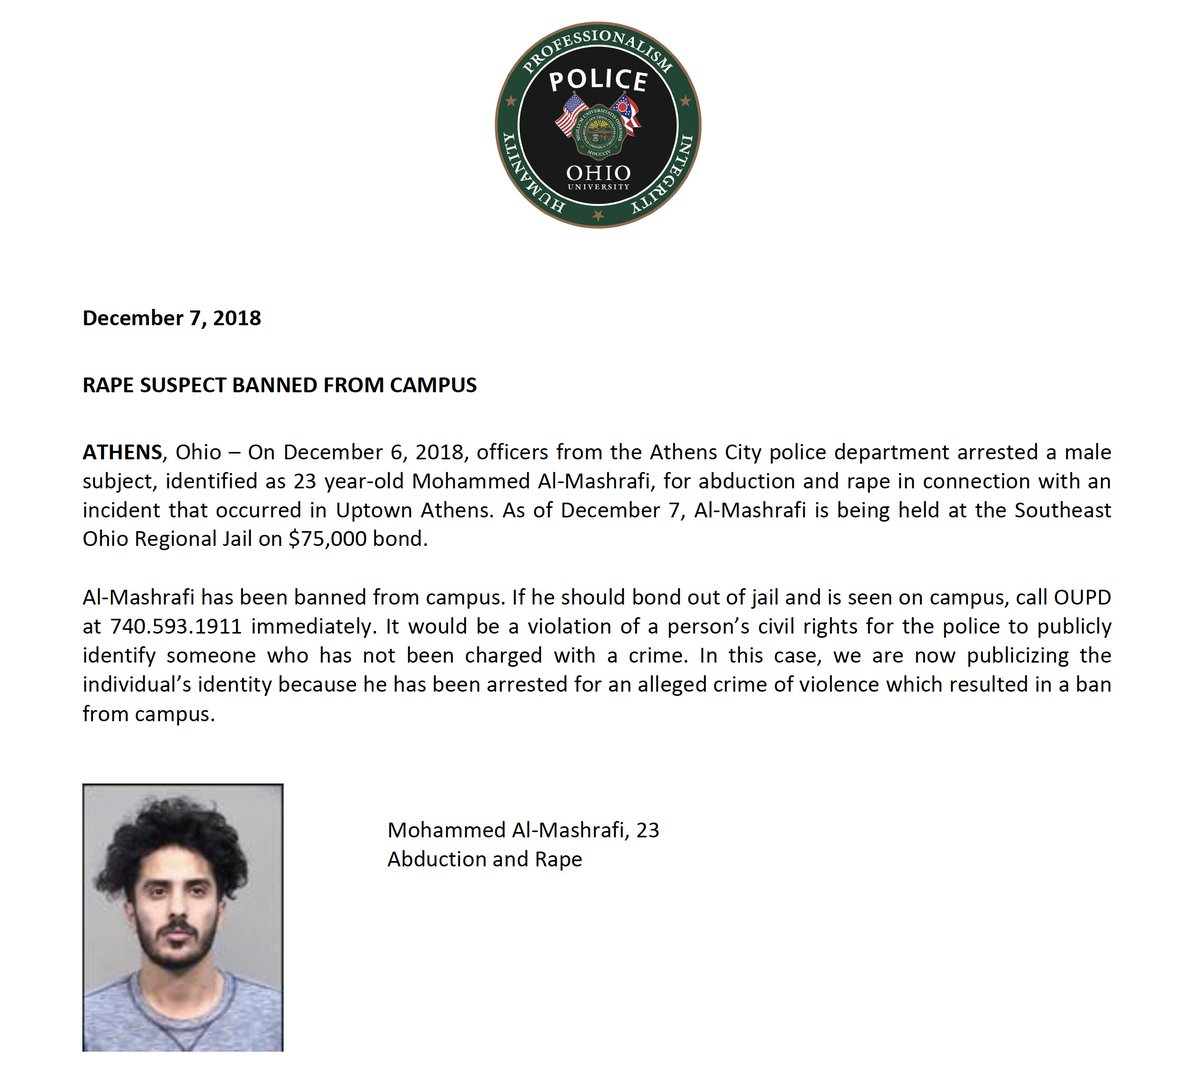 Please see attached statement regarding a recent rape suspect who is banned from campus.